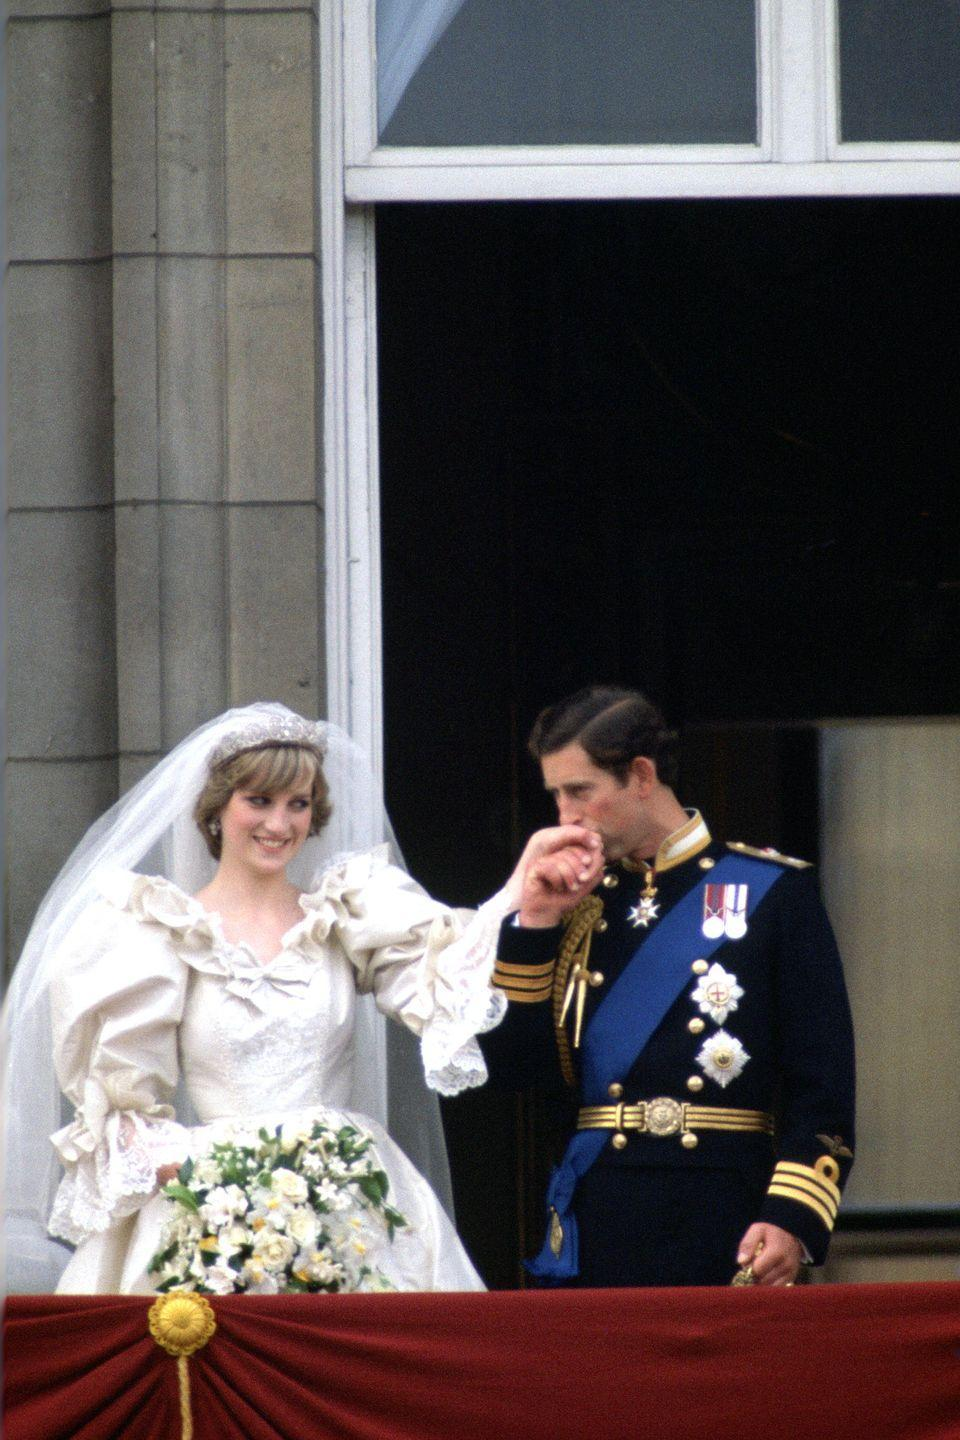 <p>In one of the most famous royal weddings of all time, Lady Diana Spencer married Prince Charles in St Paul's Cathedral in 1981. The couple held a reception at Buckingham Palace afterward, where they shared their famous balcony kiss.</p>